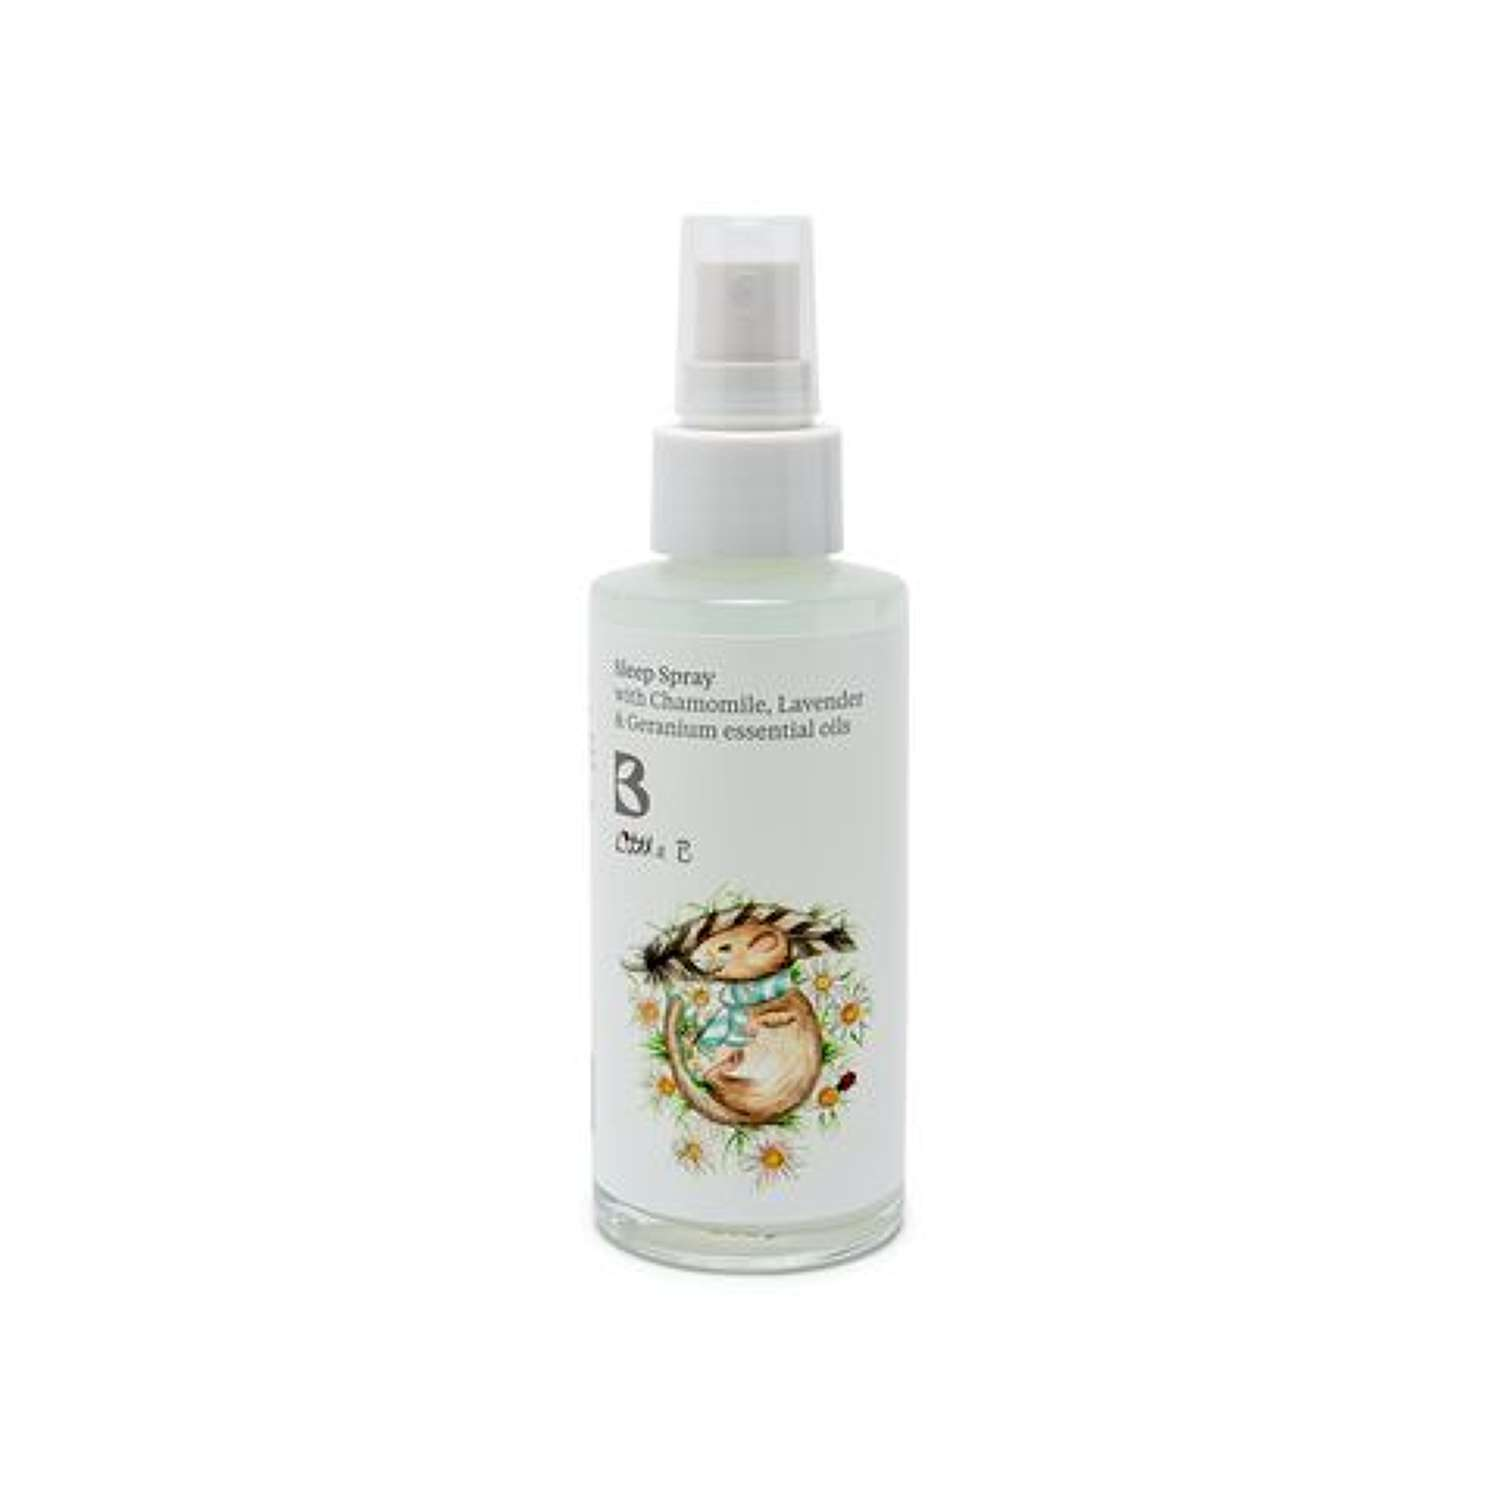 Little B Sleep Spray - 100ml